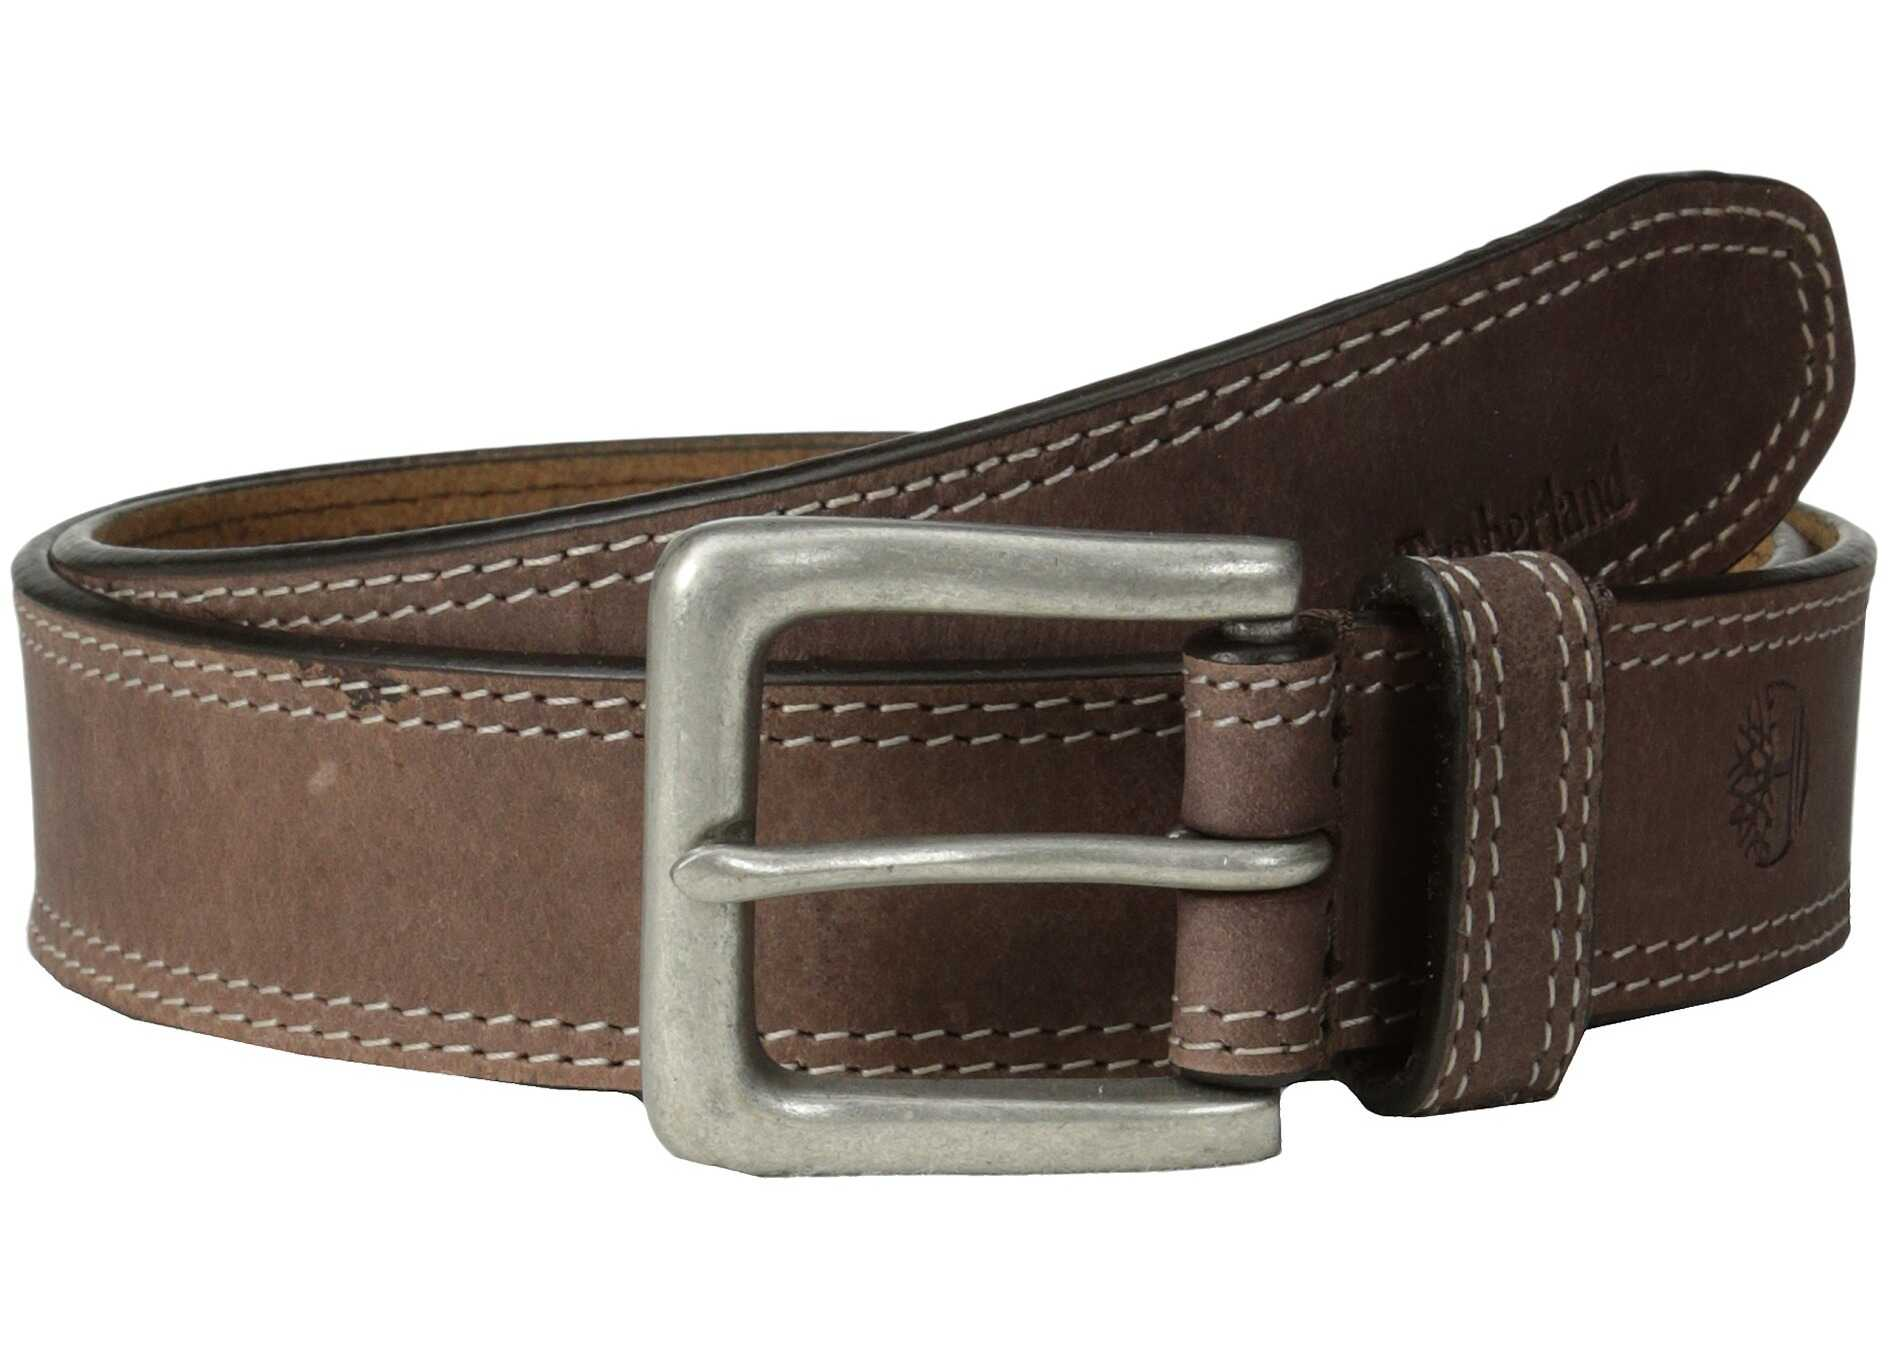 Timberland 35mm Boot Leather Belt Dark Brown